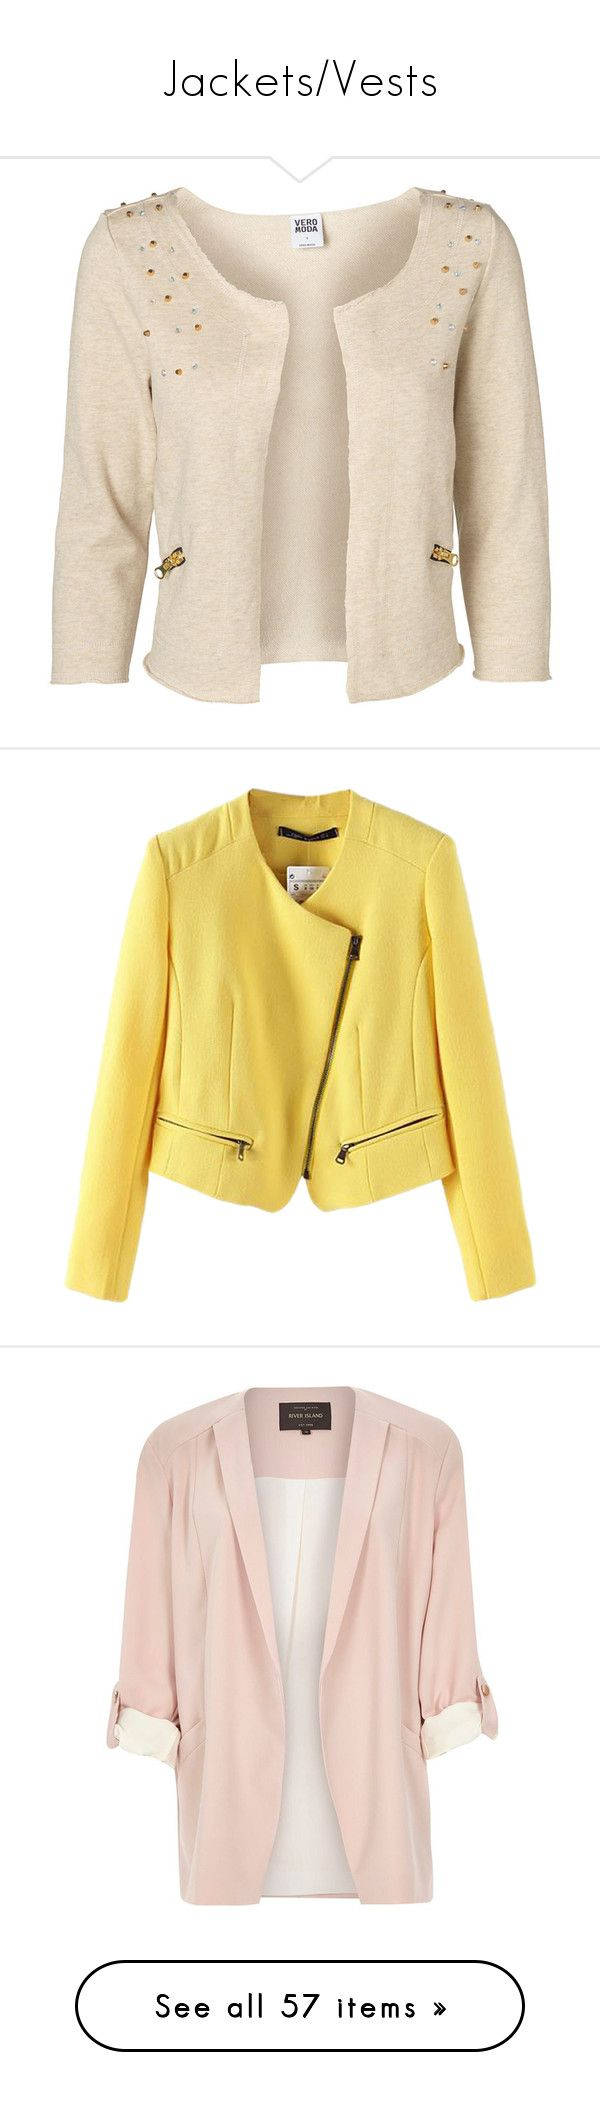 """Jackets/Vests"" by rosky ❤ liked on Polyvore featuring outerwear, jackets, blazers, cardigans, casacos, oatmeal, 3/4 sleeve blazer, pink studded jacket, vero moda and three quarter sleeve blazer"